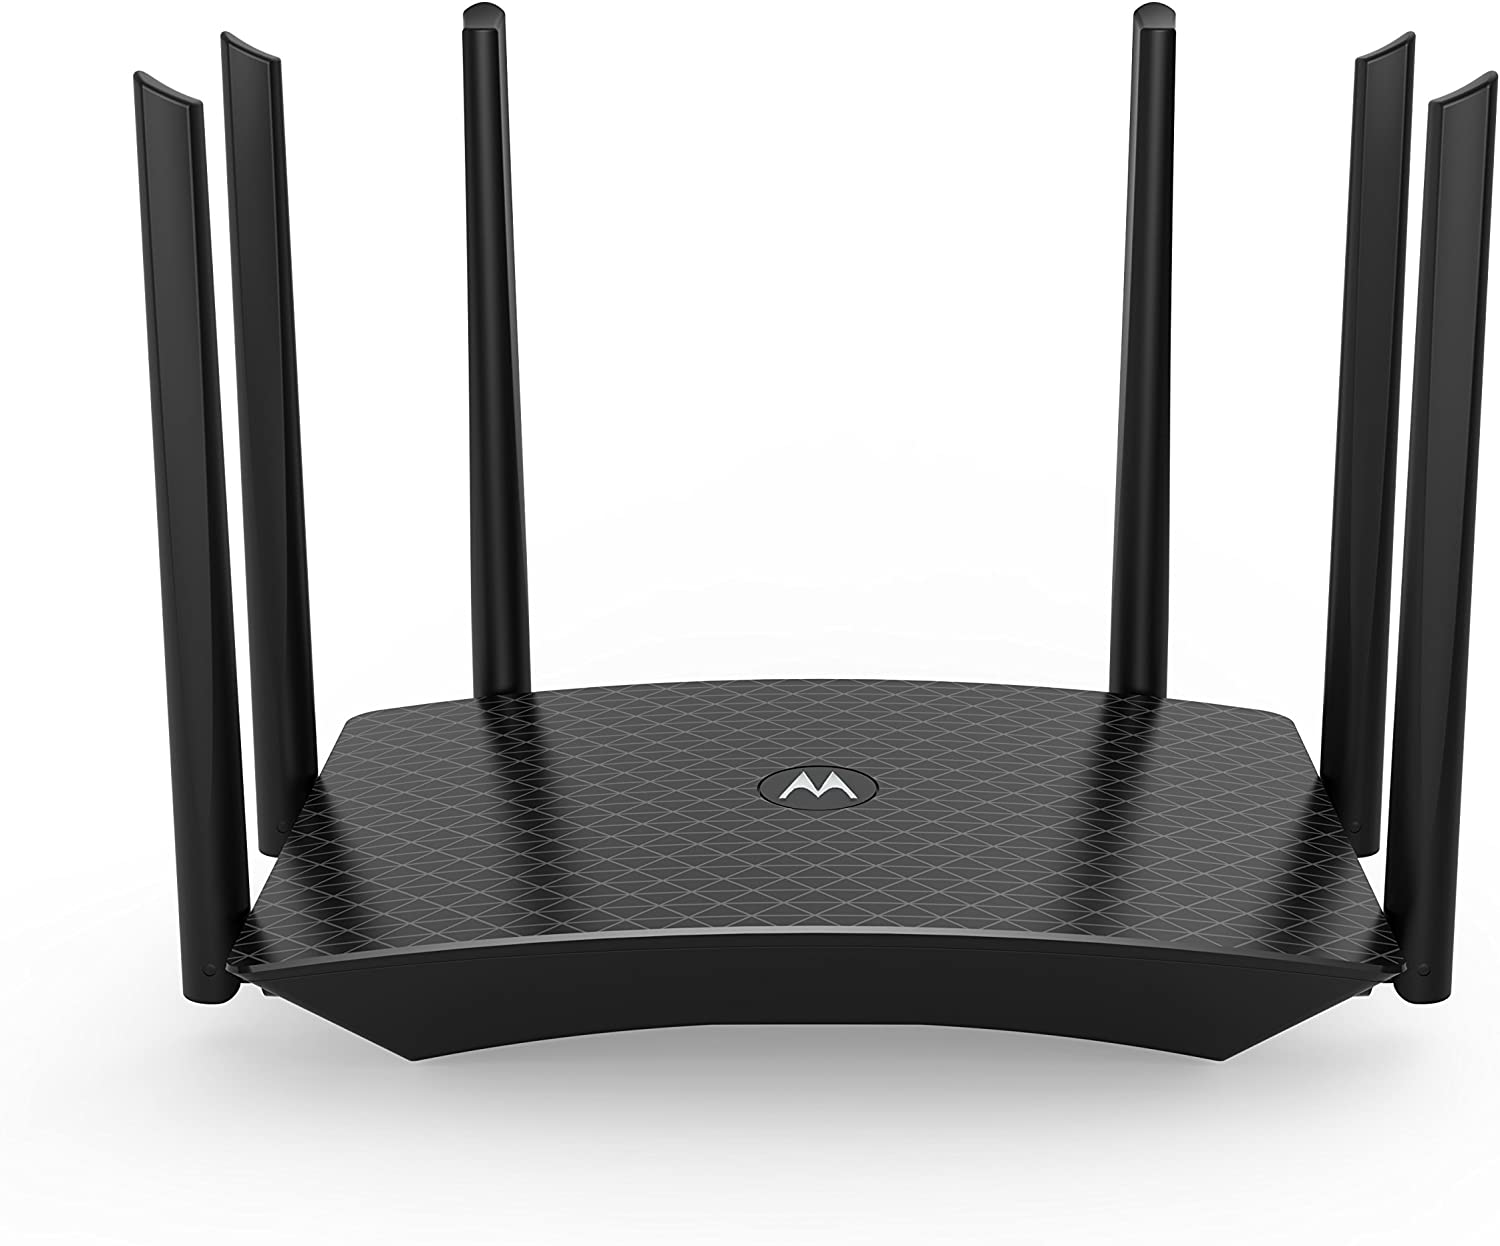 Best Dual Band WiFi Routers